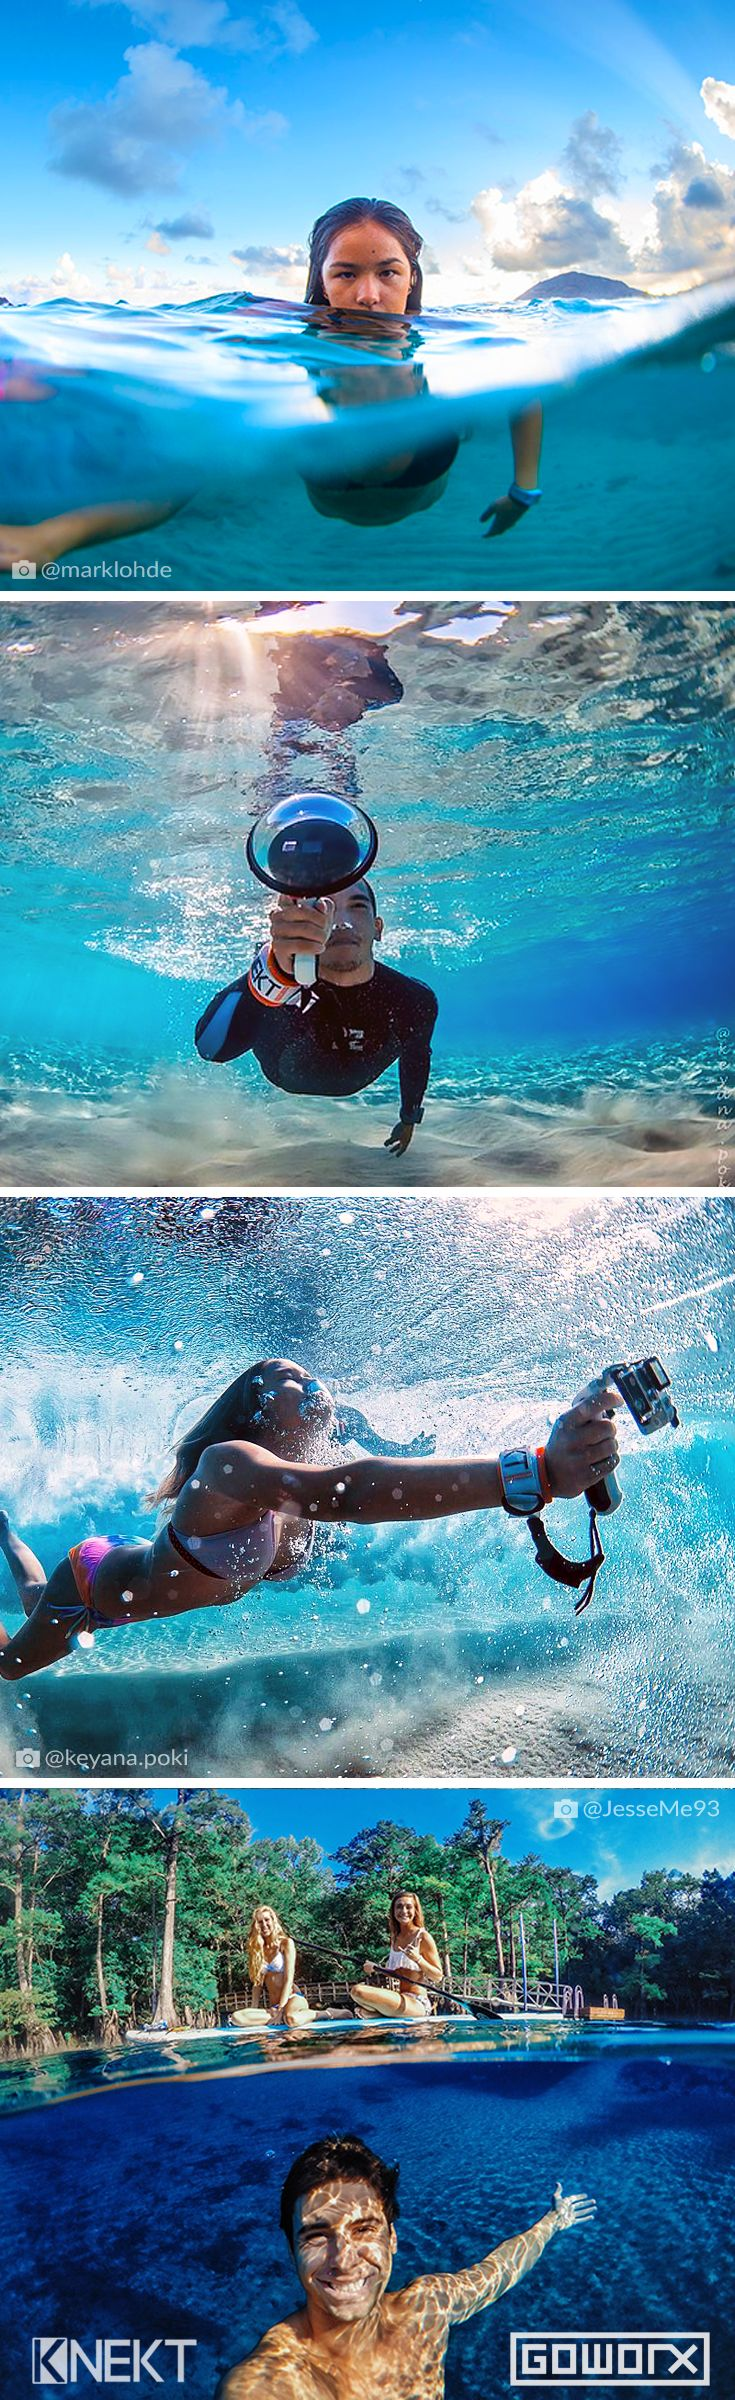 Capture epic over-under photos with the KNEKT GoPro Dome Port & GoPro Triggers - backed by our 100% Gear Guarantee. Repin if you get stoked by those underwater vibes like we do! Your source for GoPro,